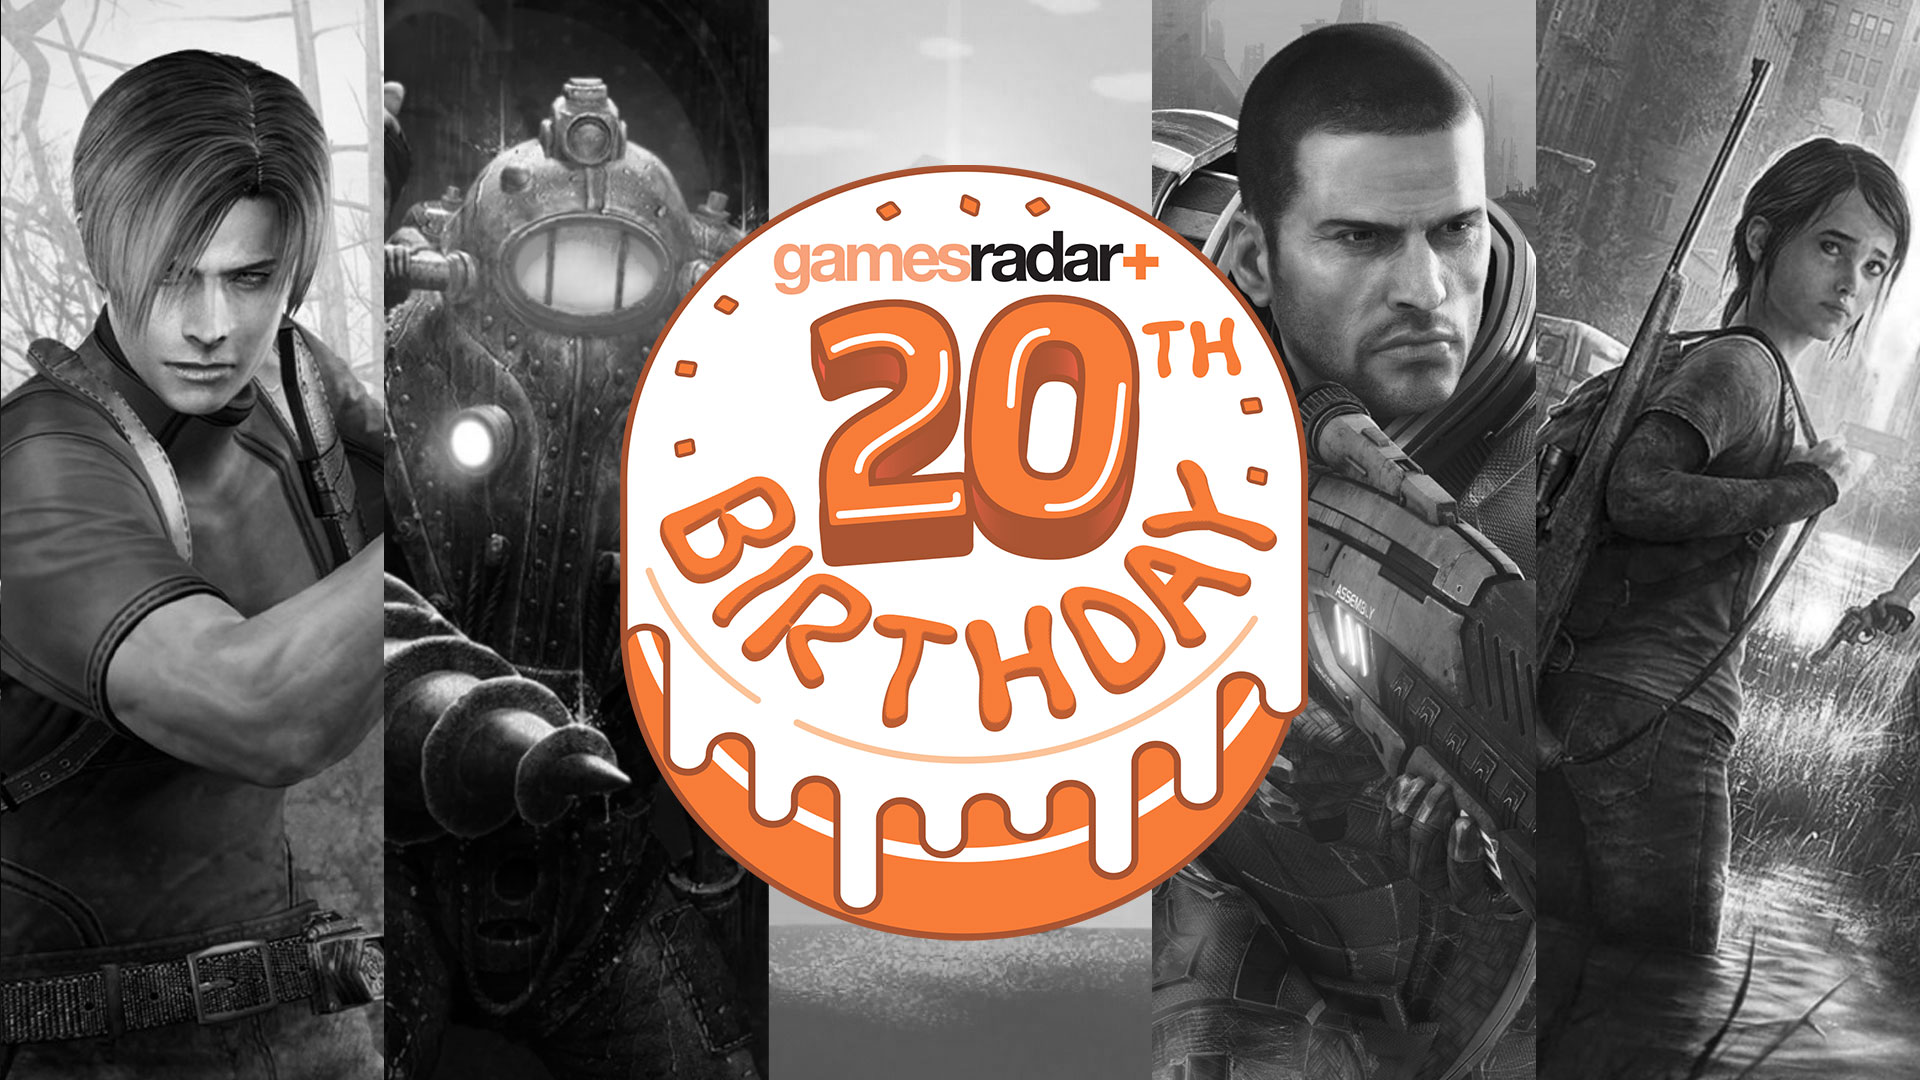 f1117c3fd GamesRadar is turning 20! To celebrate, we looked back at the 20 ...